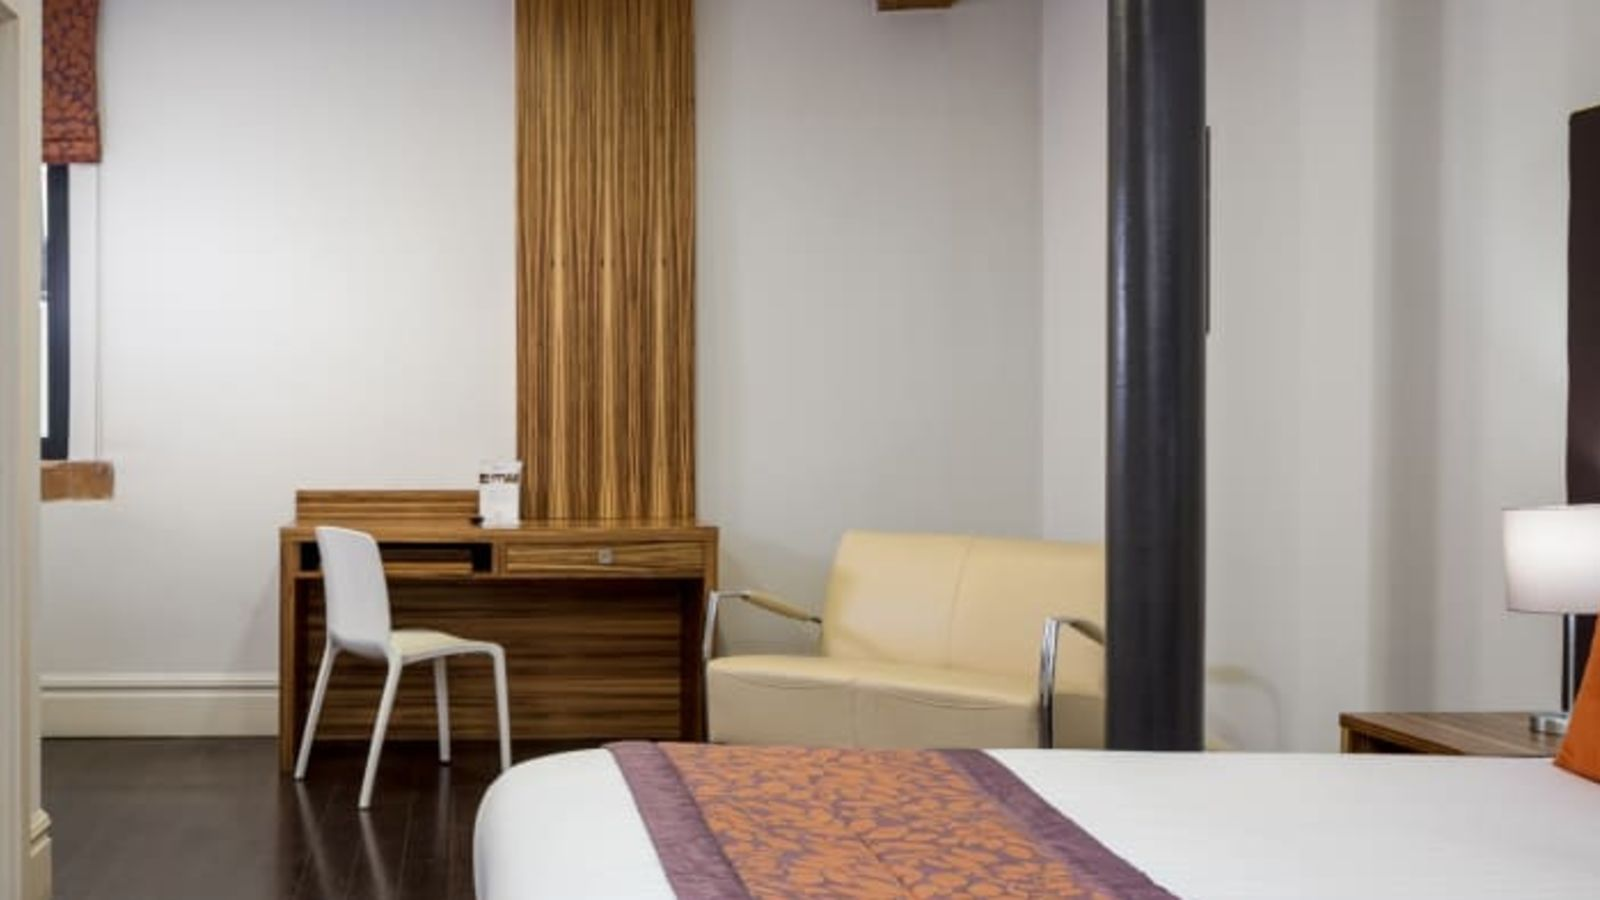 Smart Studio Student Apartment in Manchester. King Size Bed and Desk. IconInc @ Roomzzz